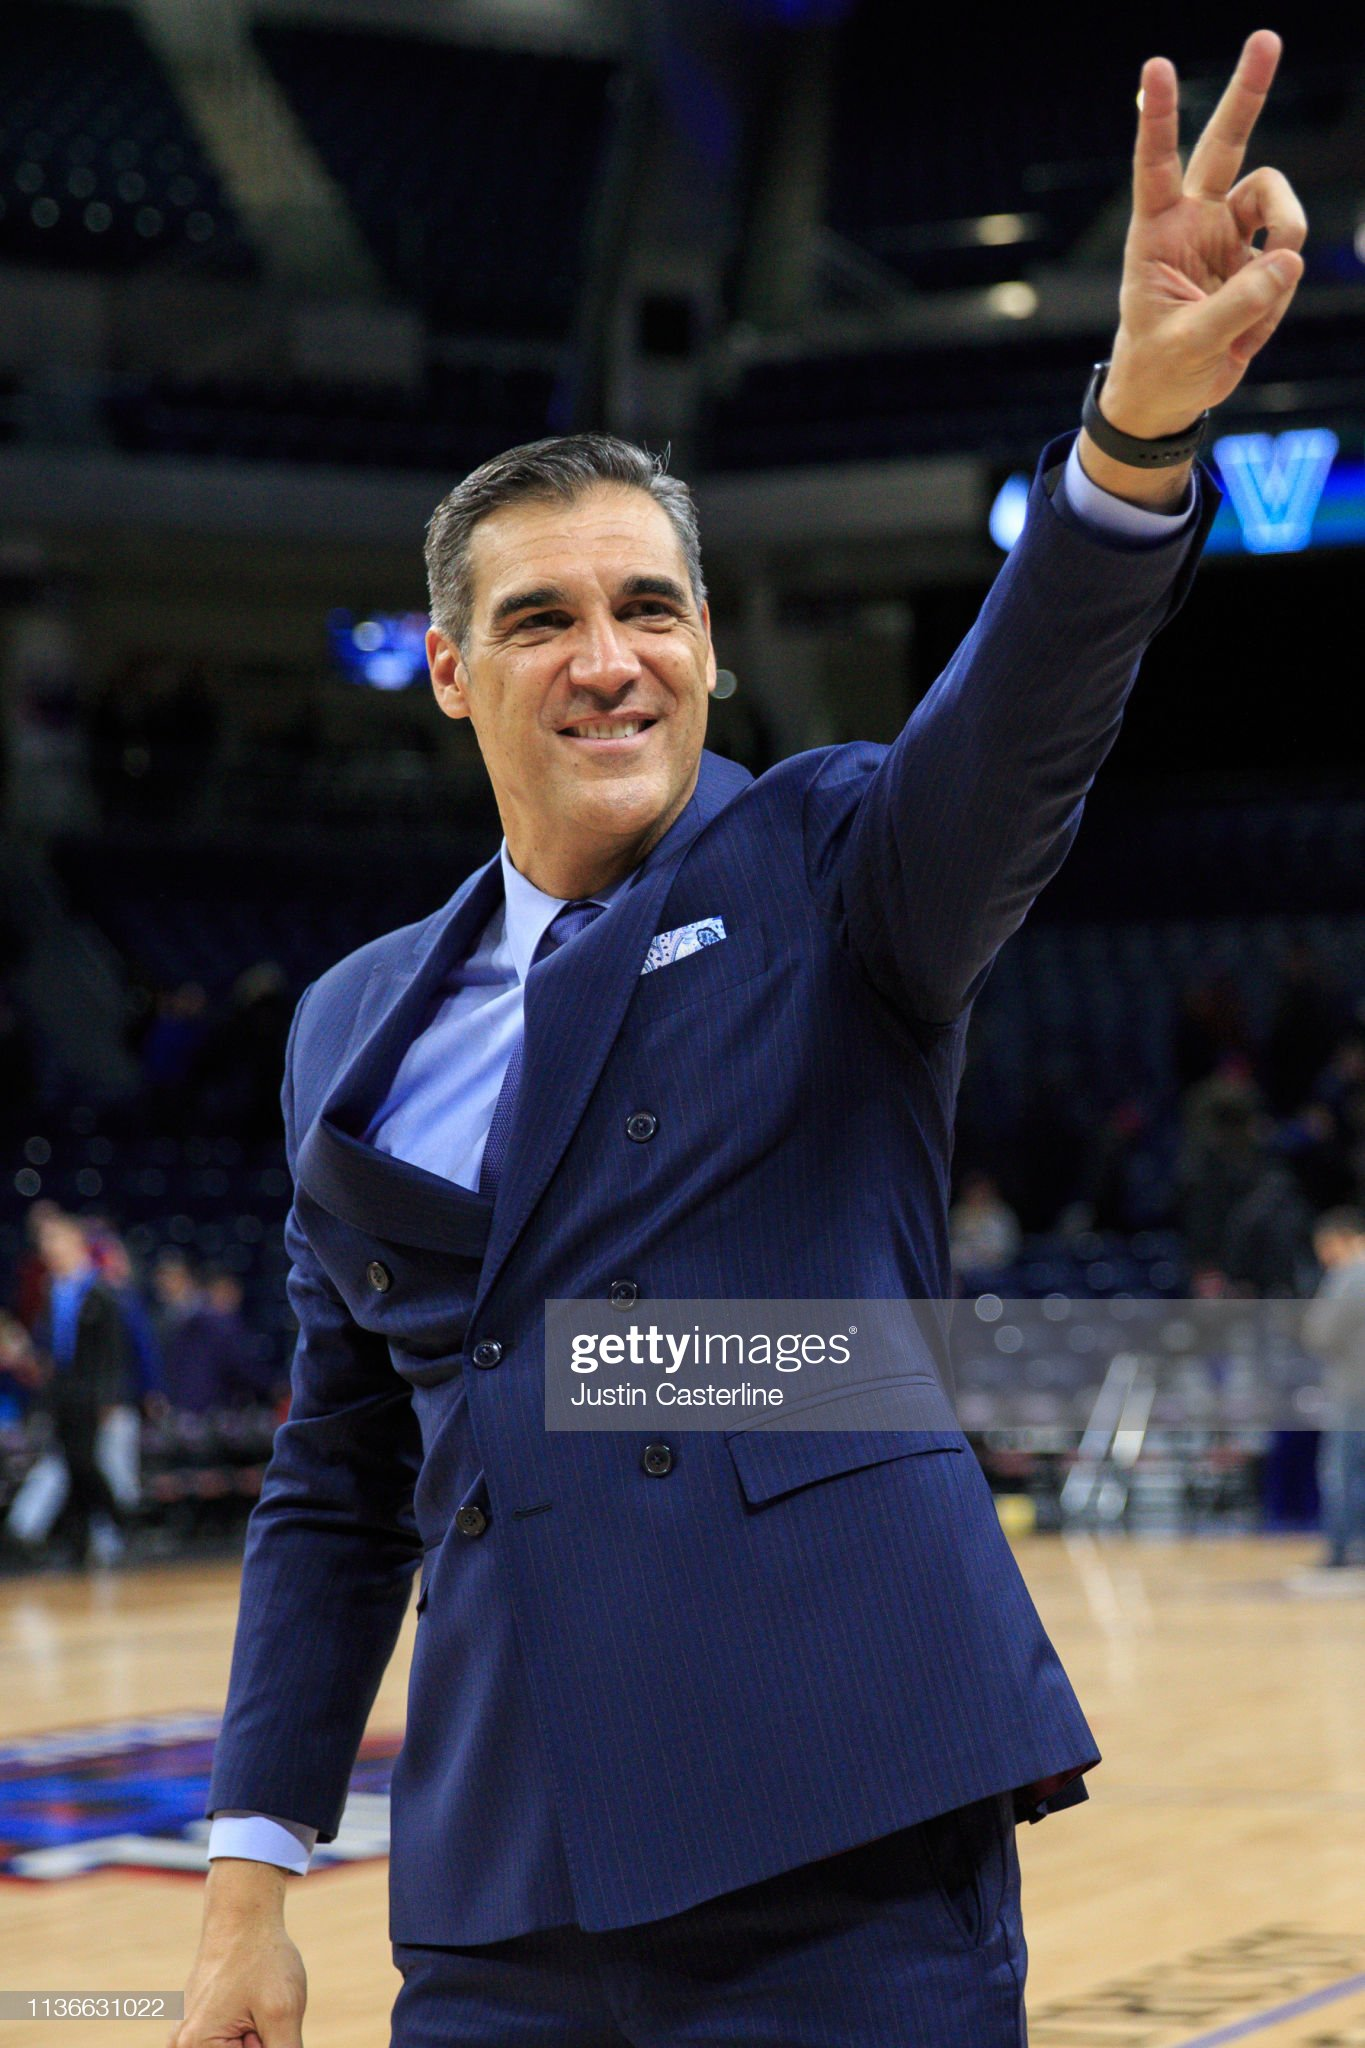 head-coach-jay-wright-of-the-villanova-w